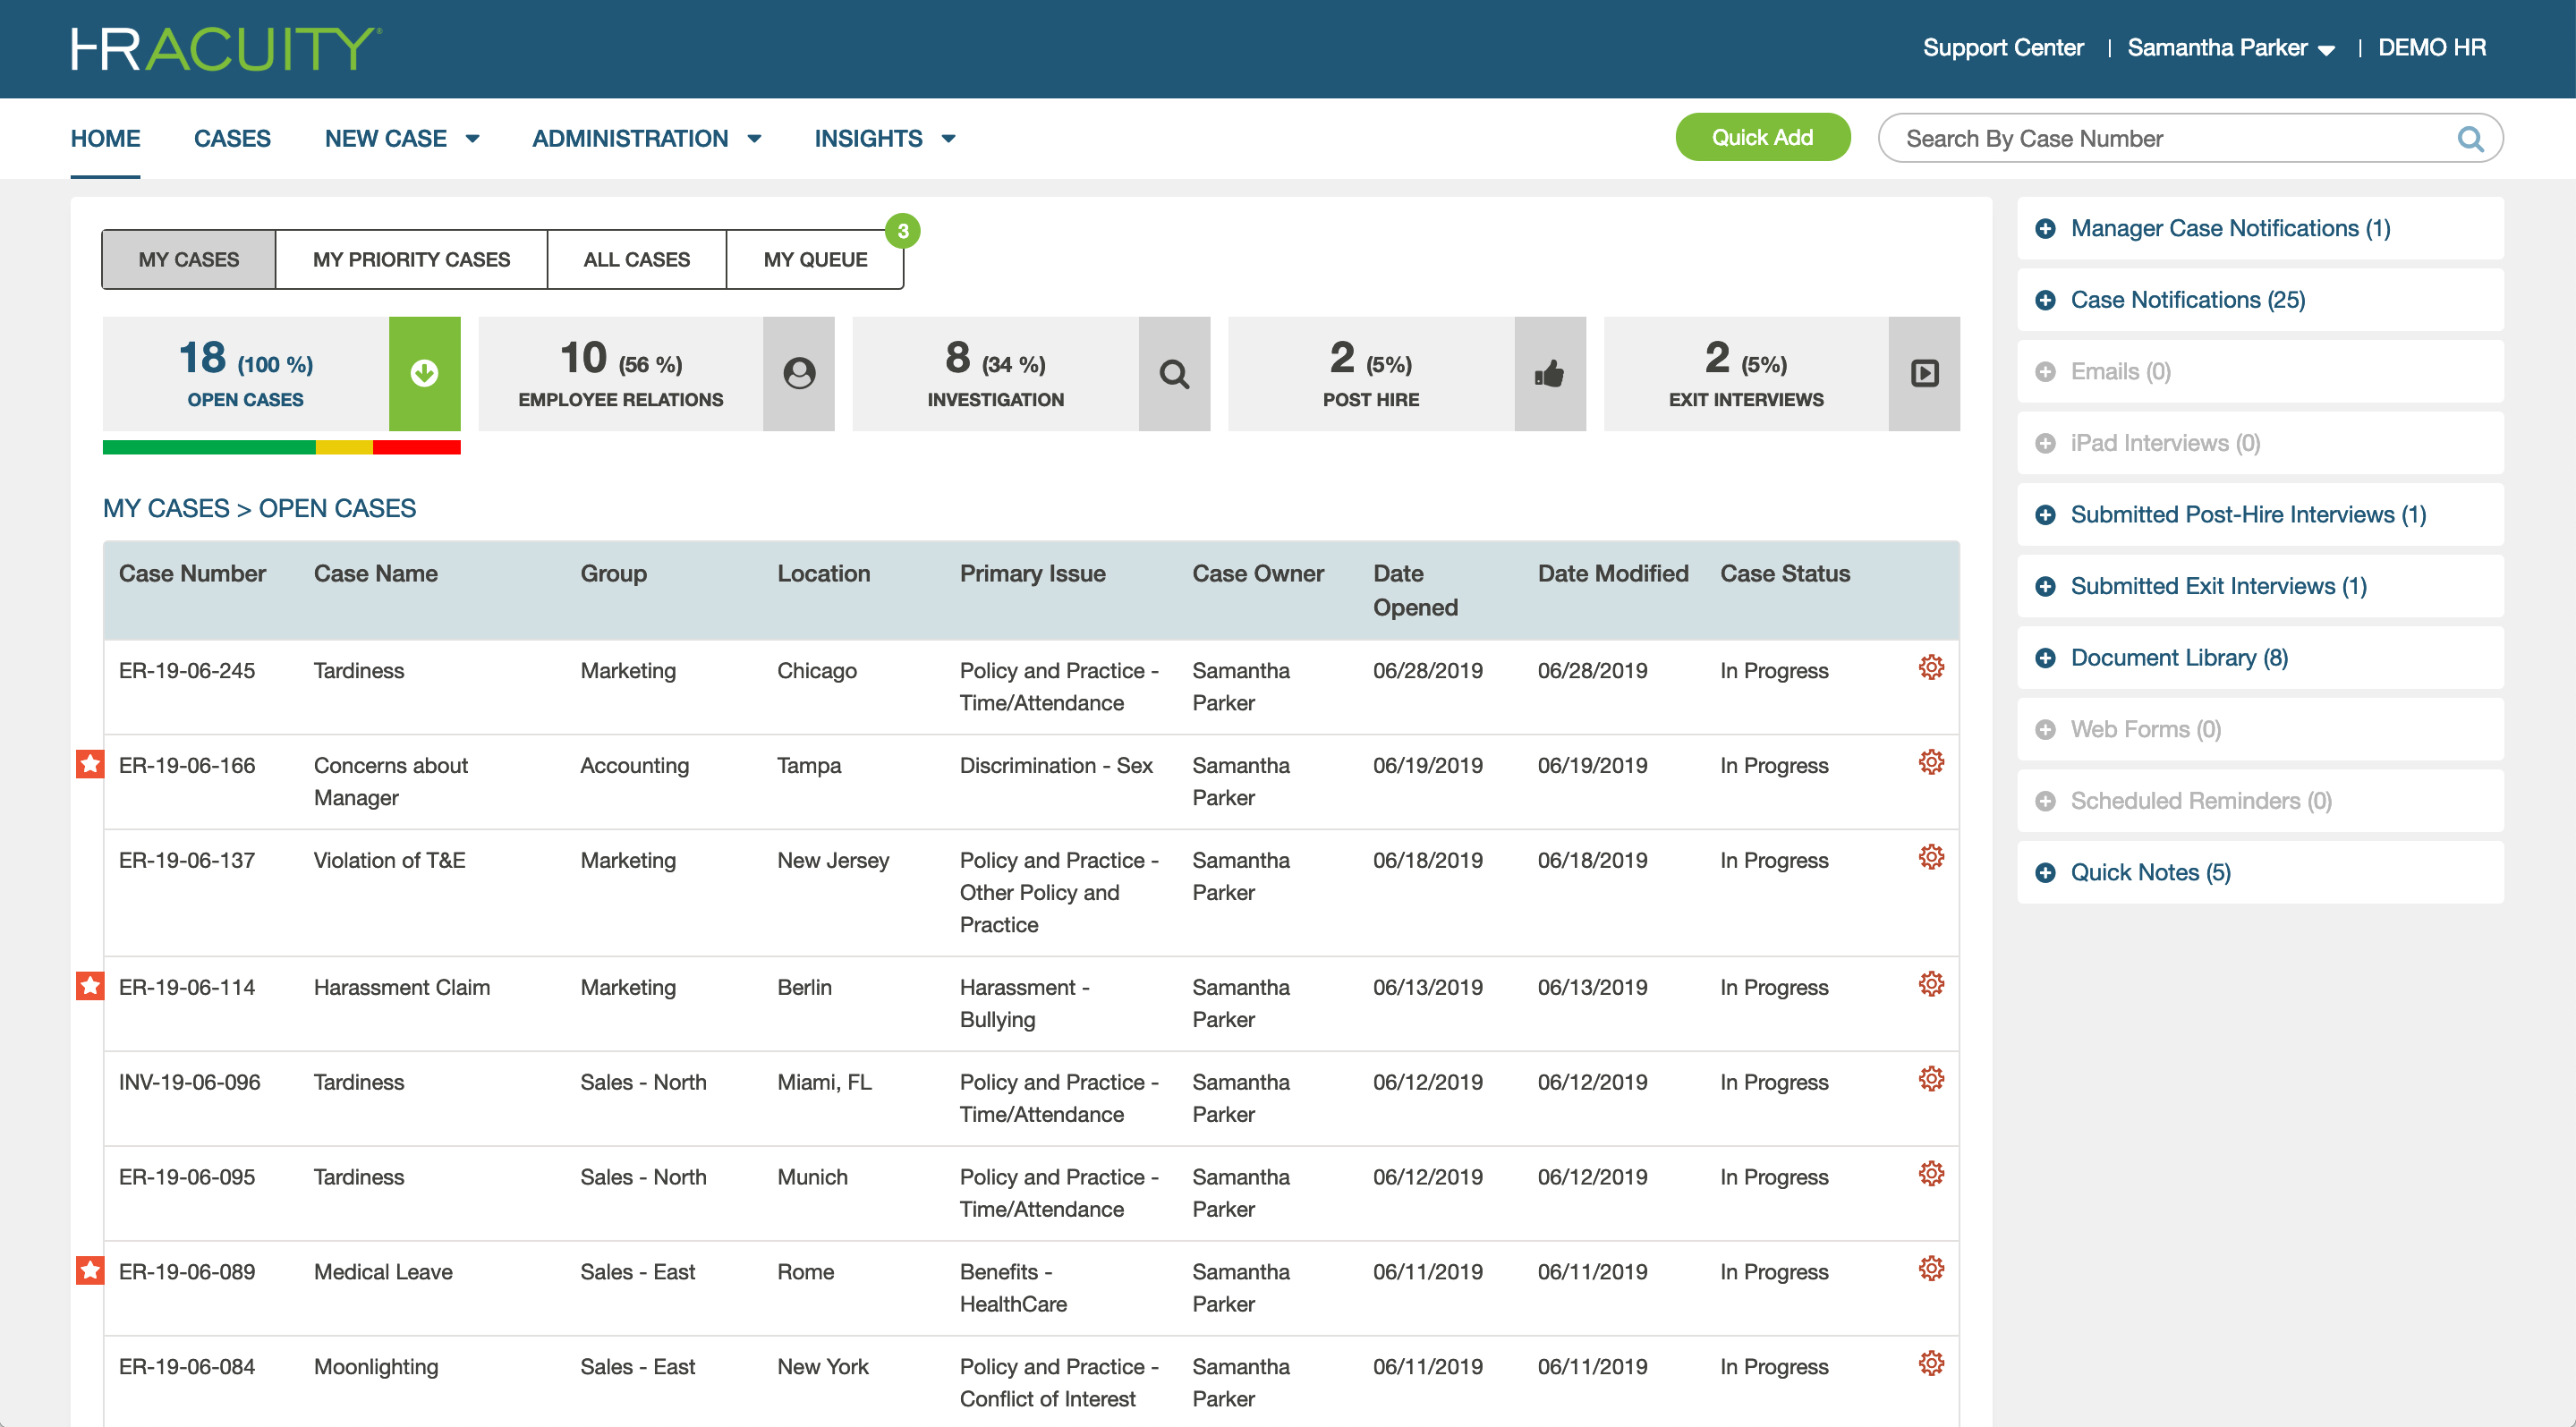 HR Acuity screenshot: The HR Acuity case management interface